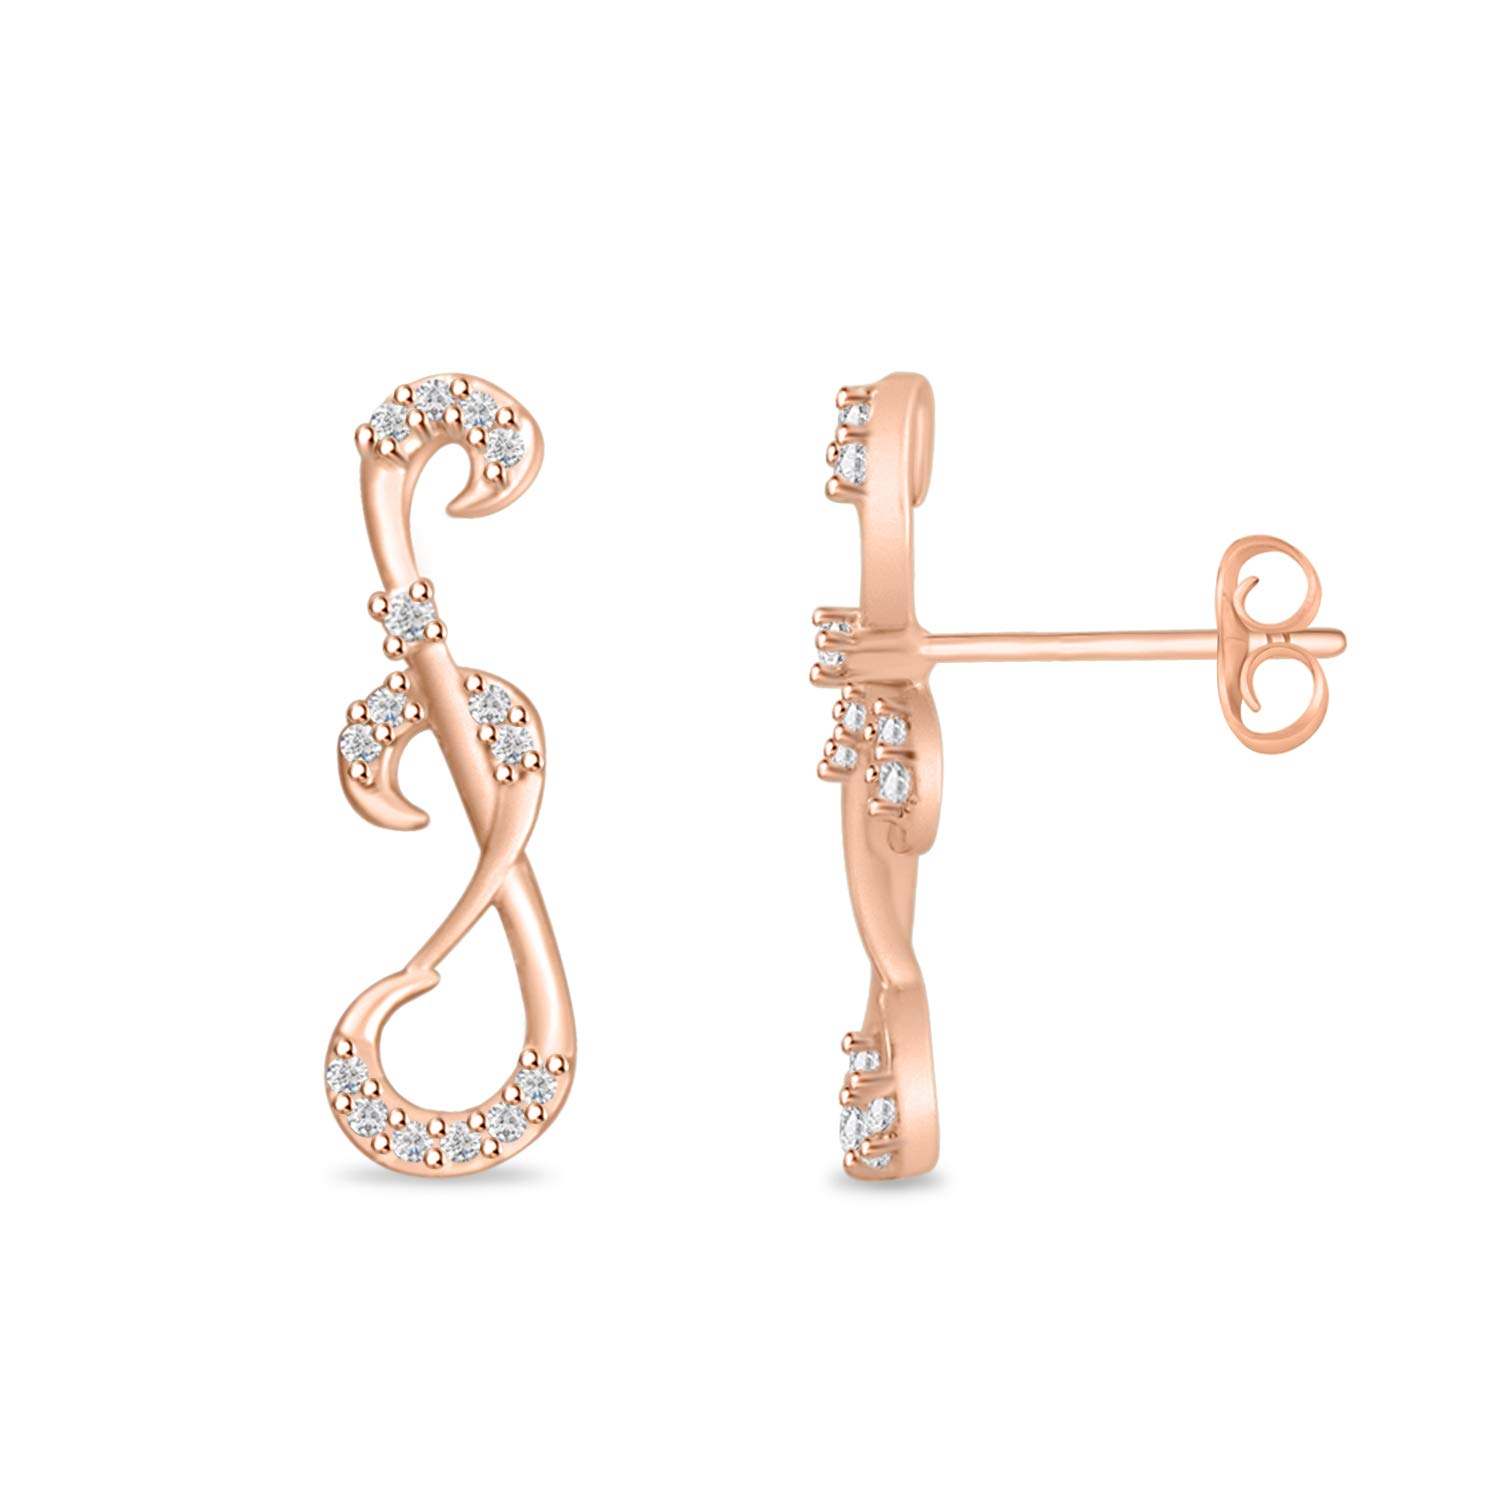 Round Cubic Zirconia Infinity Knot Filigree Fancy Trendy Stud Earrings for Women Girls Teens 14k Gold Plated